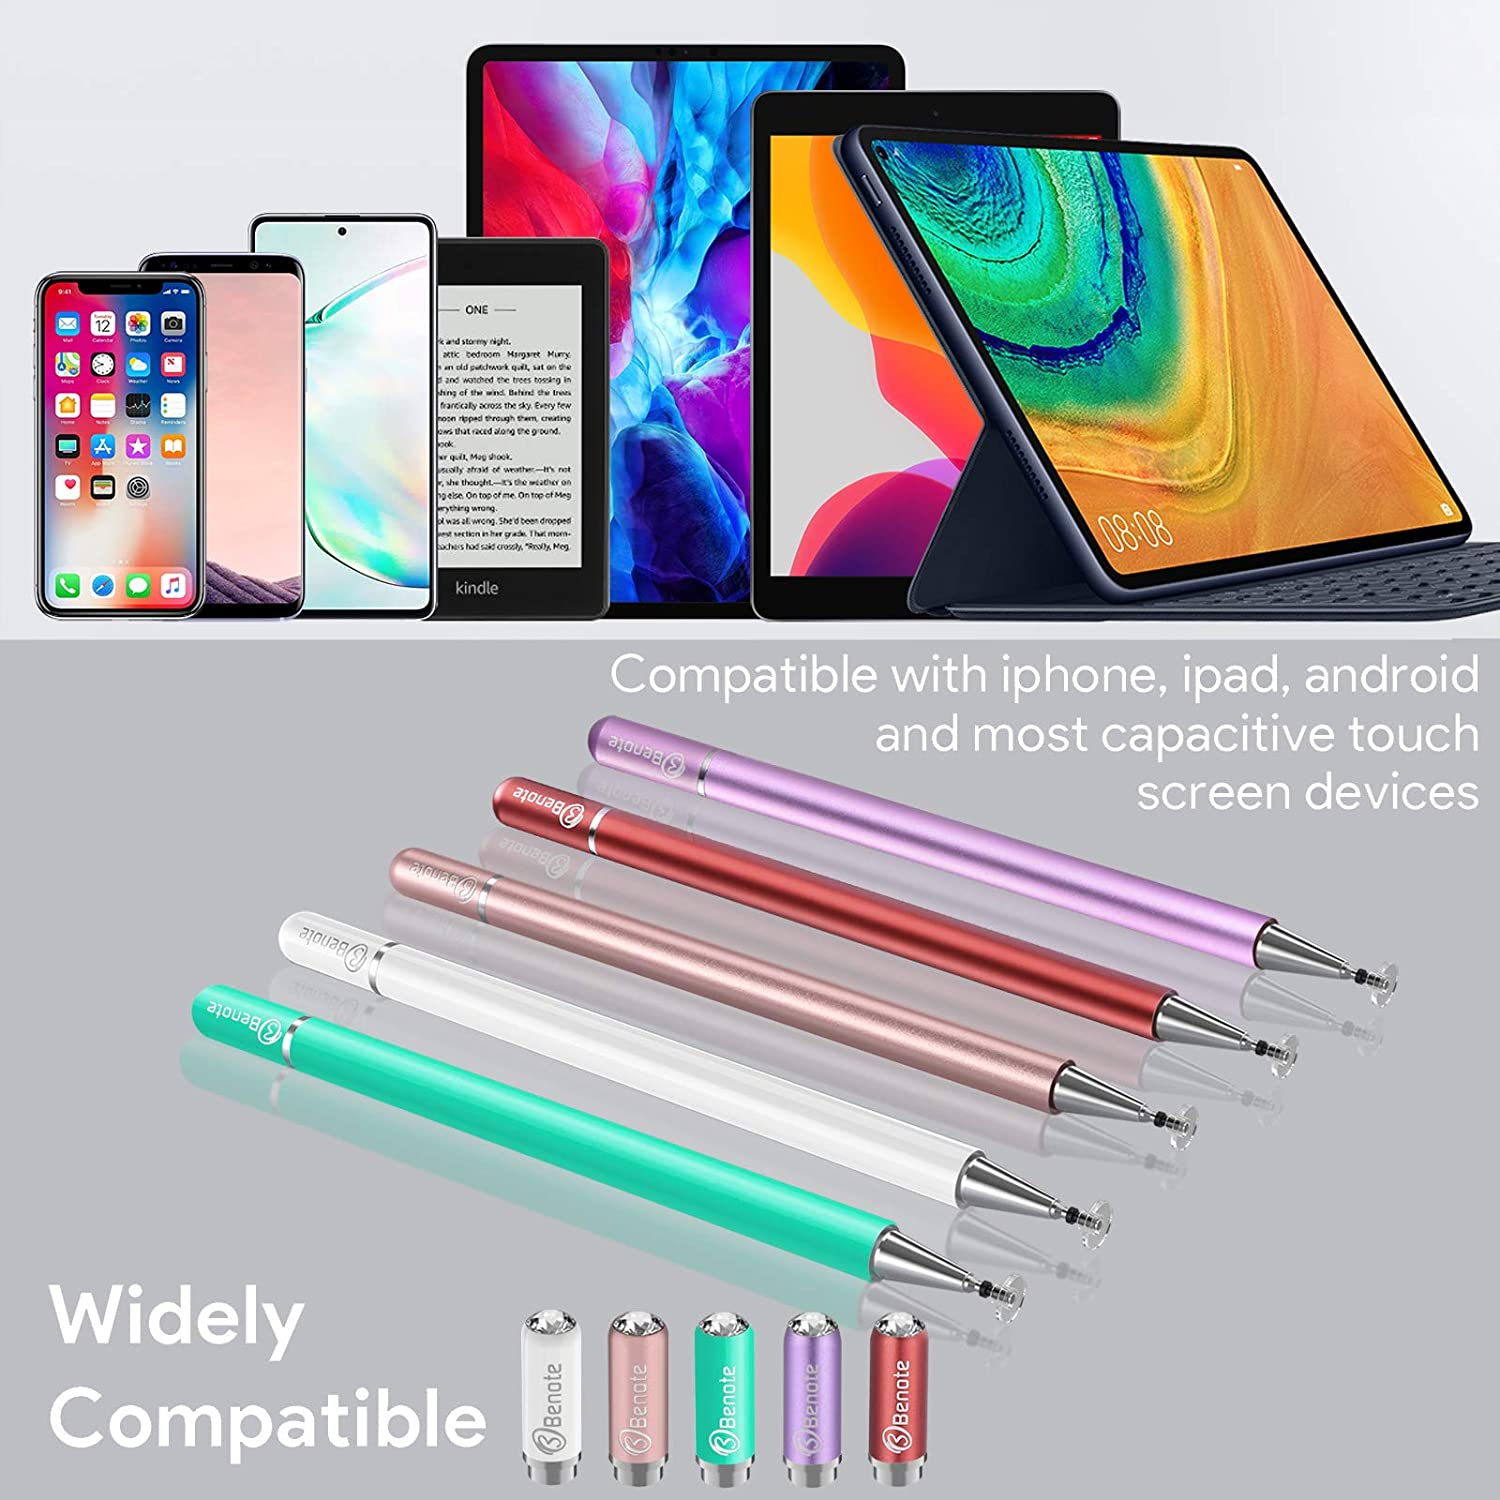 Stylus Pens for Touch Screens, Fine Tip Stylus Pen Drawing and Writing 2-in-1 Disc Tips High Sensitivity Stylus Pen for ipad, iPhone, Apple, Android, Tablet, hp Chromebook, Phone, Tablet - Purple